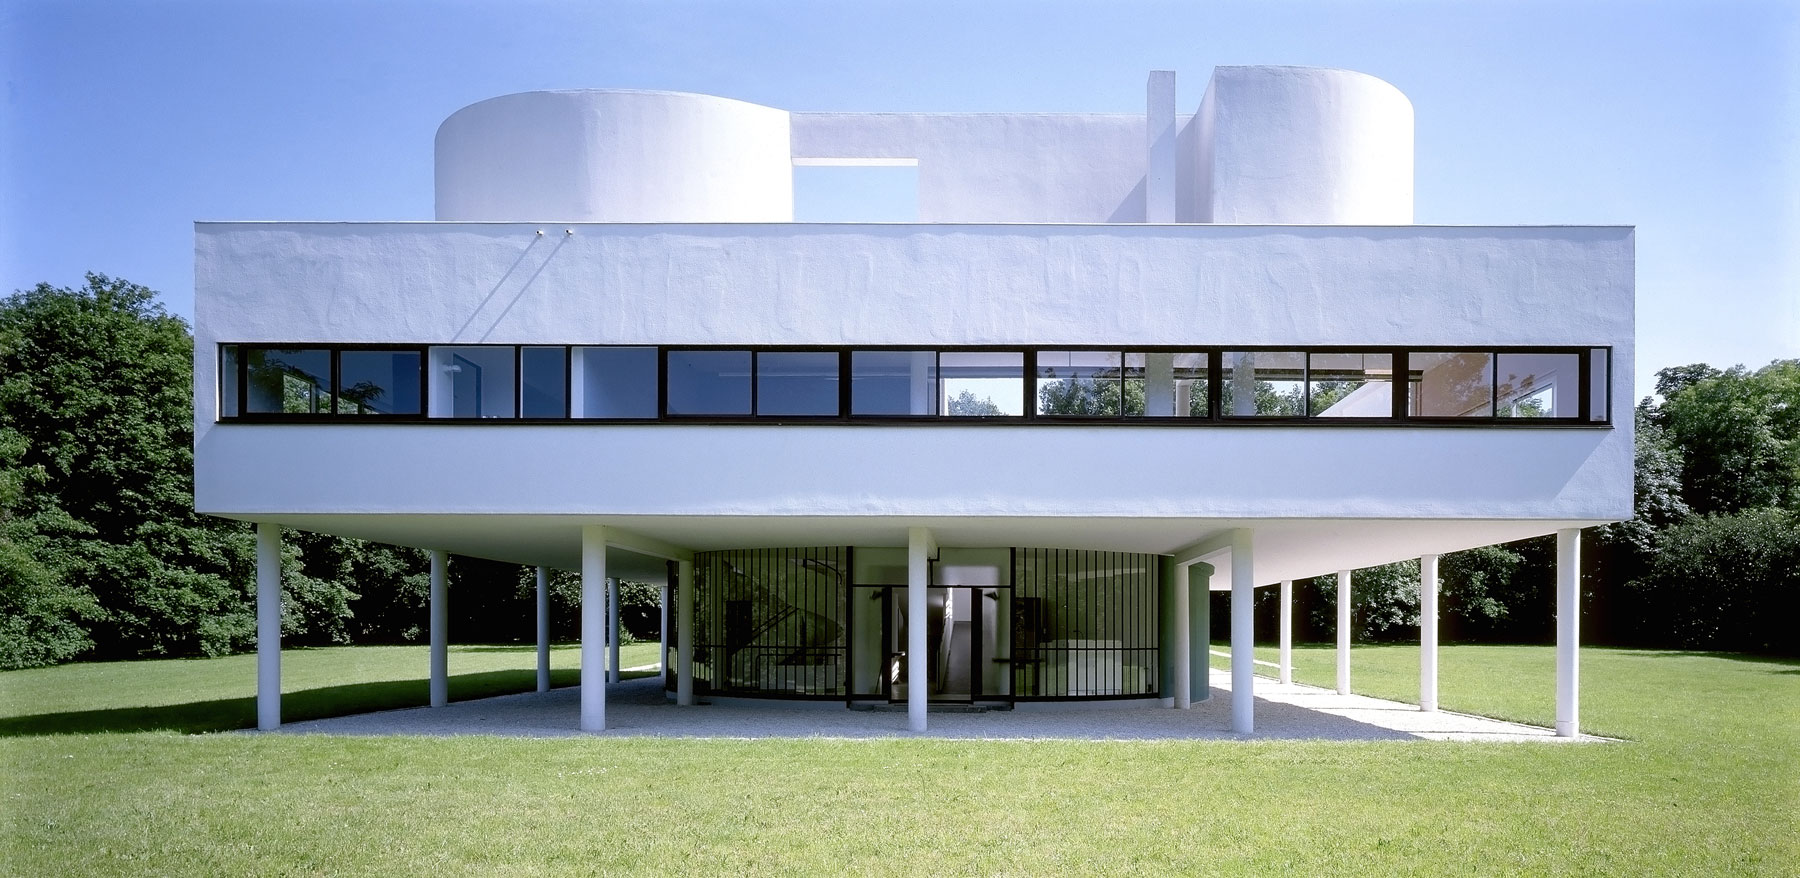 Villa Savoye, from the architect Le Corbusier, built in 1928